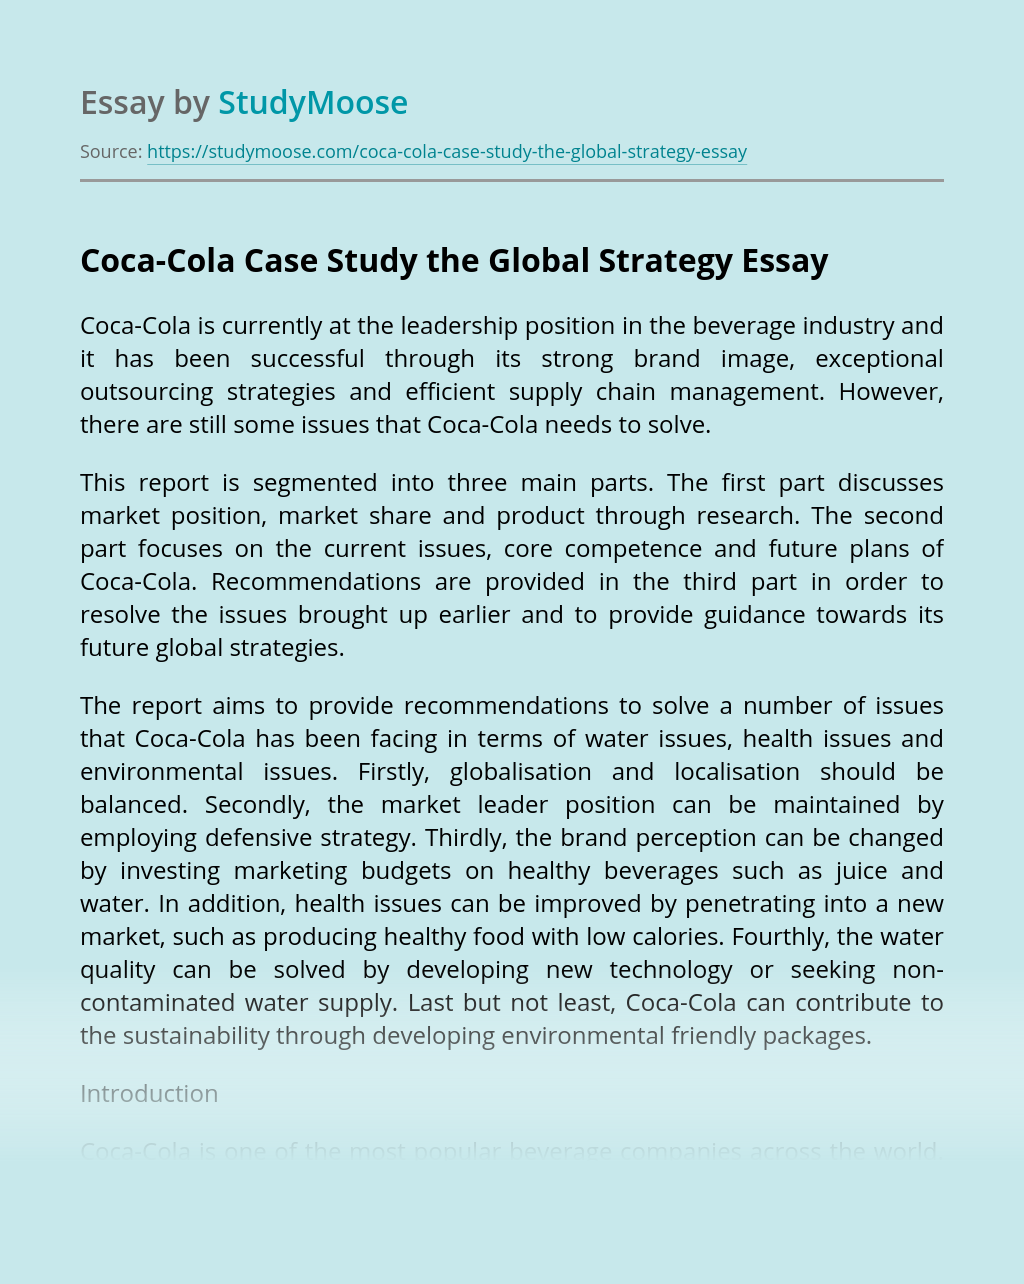 Coca-Cola Case Study the Global Strategy